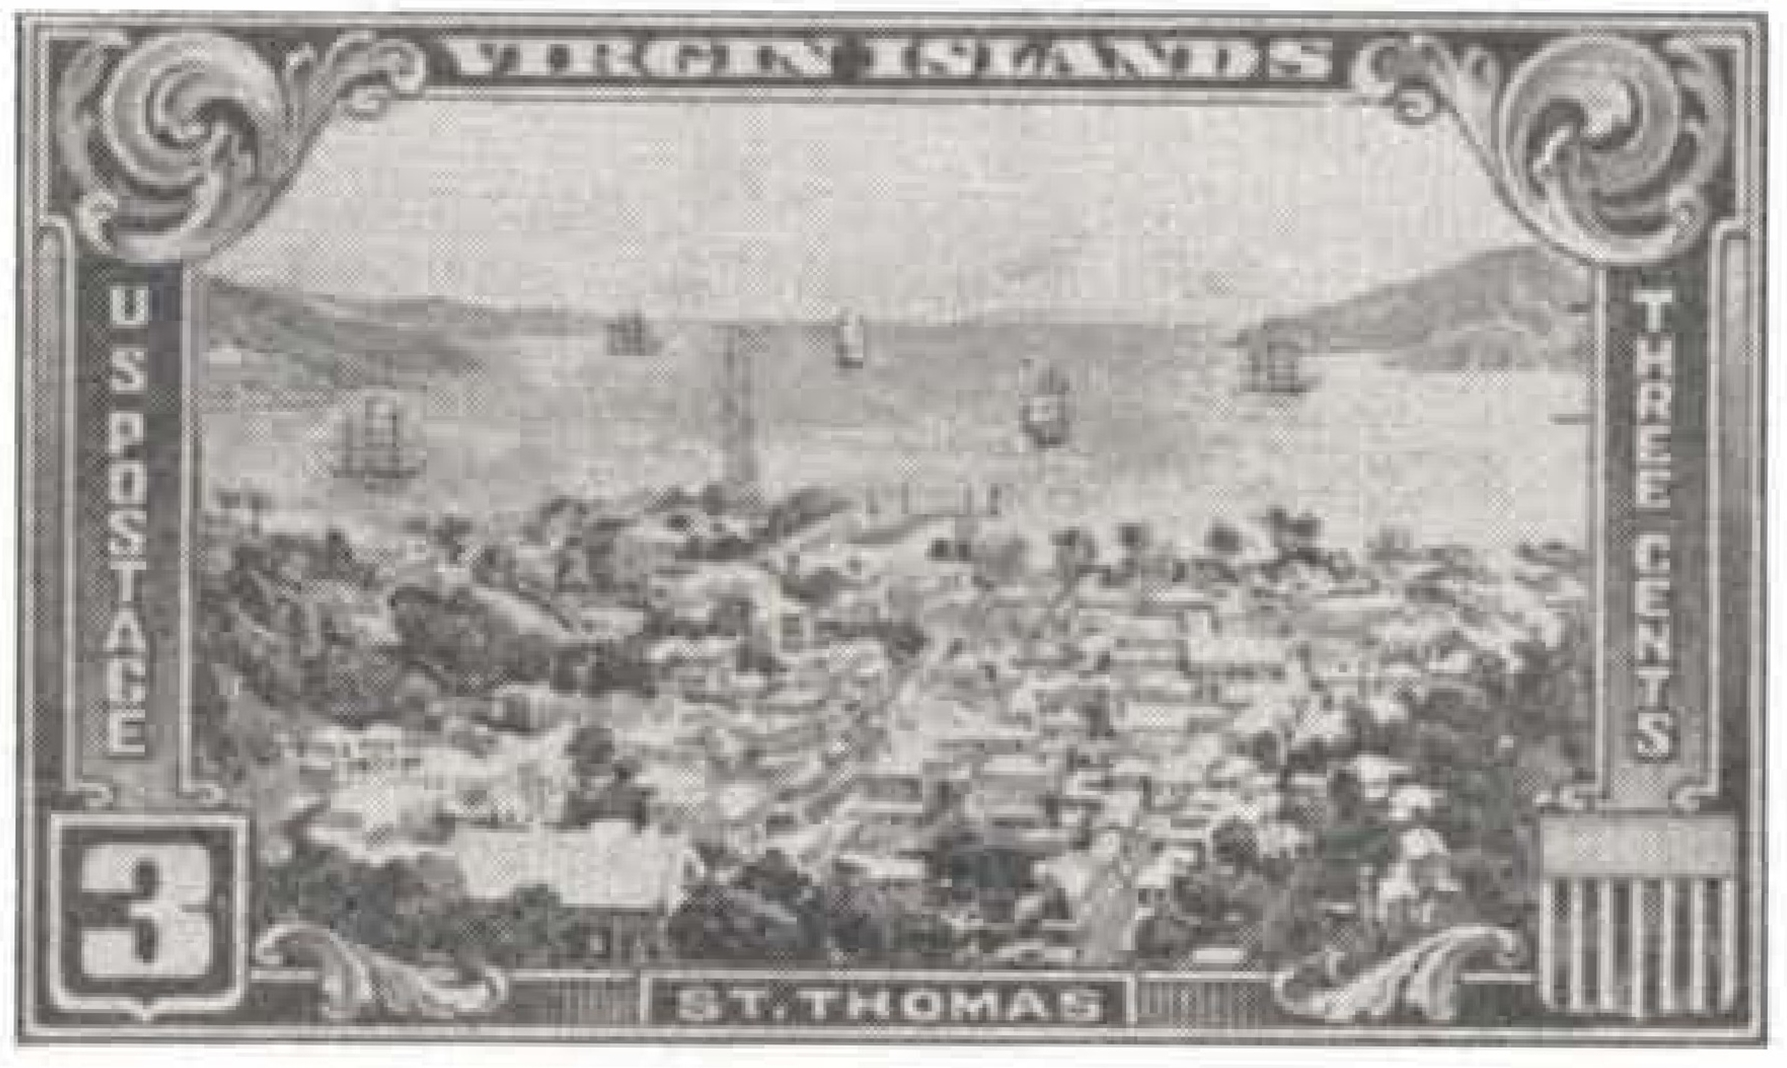 Unreleased design for the 1937 Virgin Islands stamp picturing St. Thomas harbor rather than the approved Charlotte Amalie design.